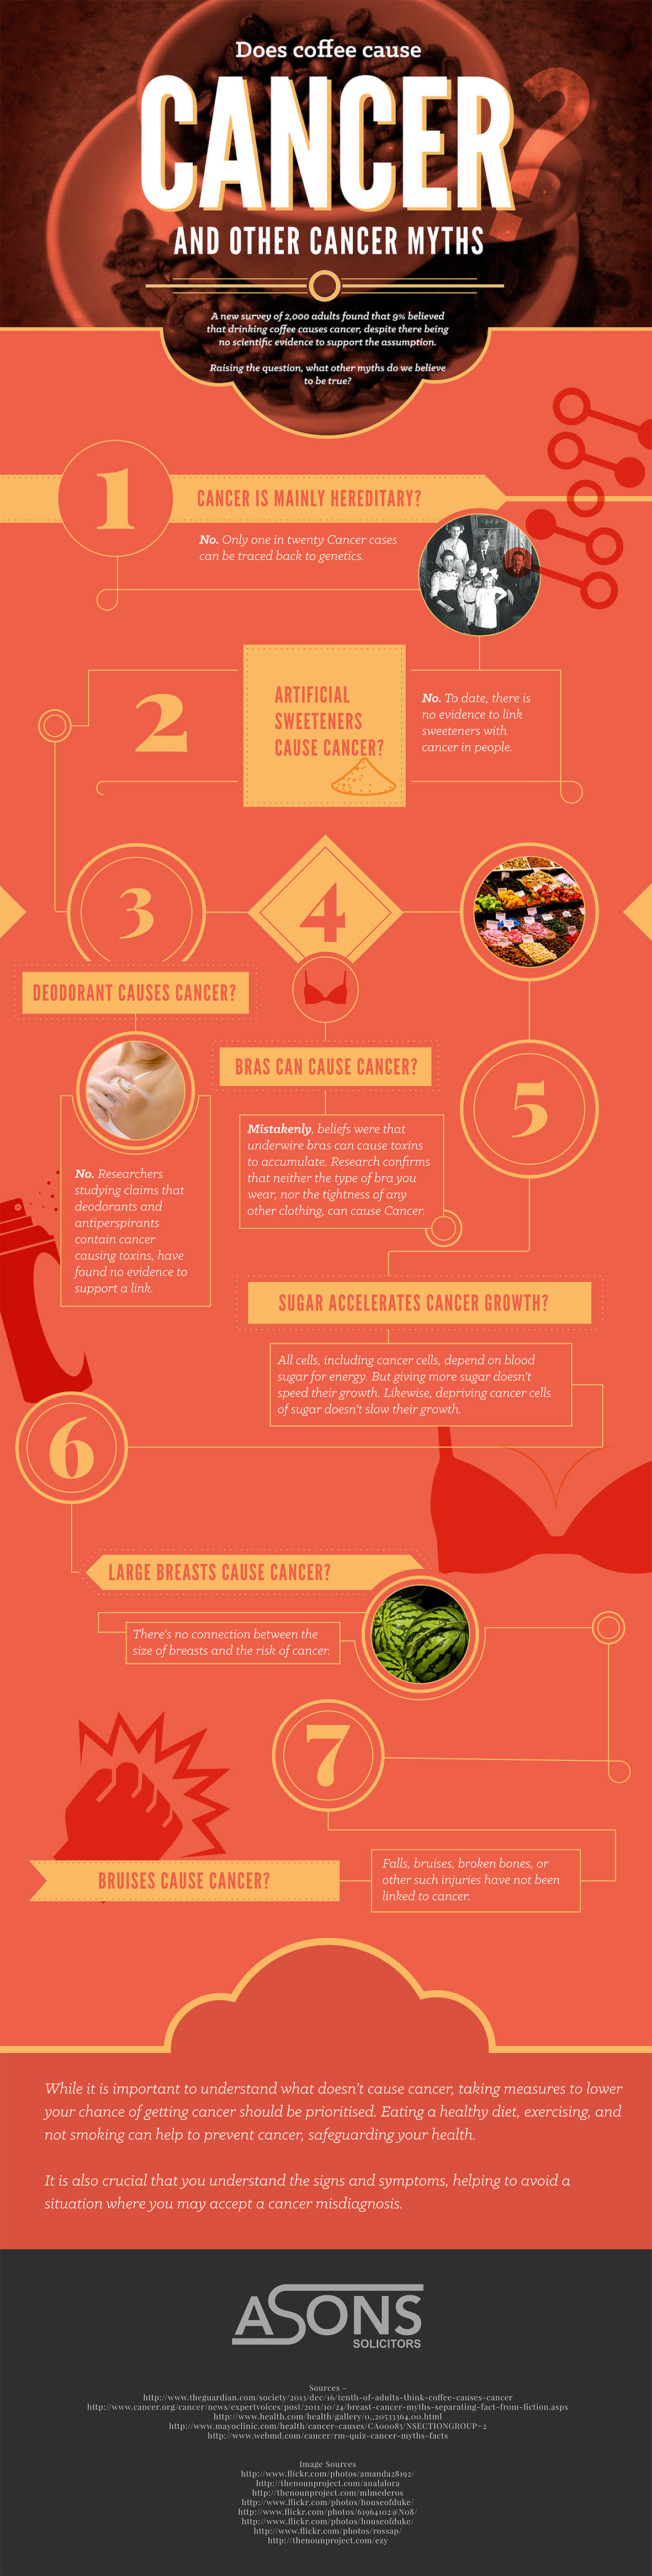 Infographic: Does Coffee Cause Cancer And Other Cancer Myths